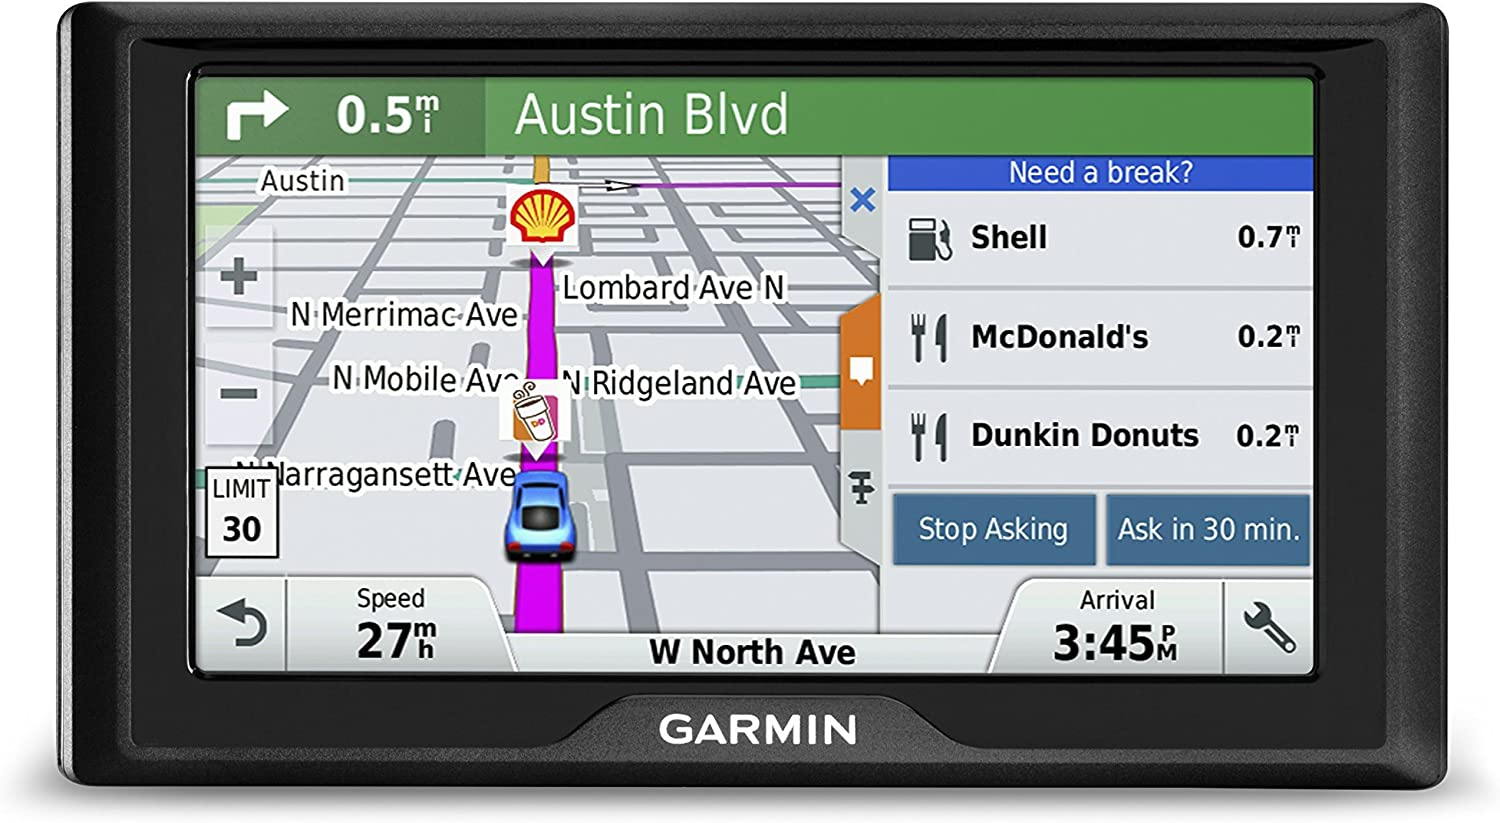 Garmin Drive 60 USA LM GPS Navigator System with Lifetime Maps, Spoken Turn-By-Turn Directions, Direct Access, Driver Alerts, and Foursquare Data Renewed